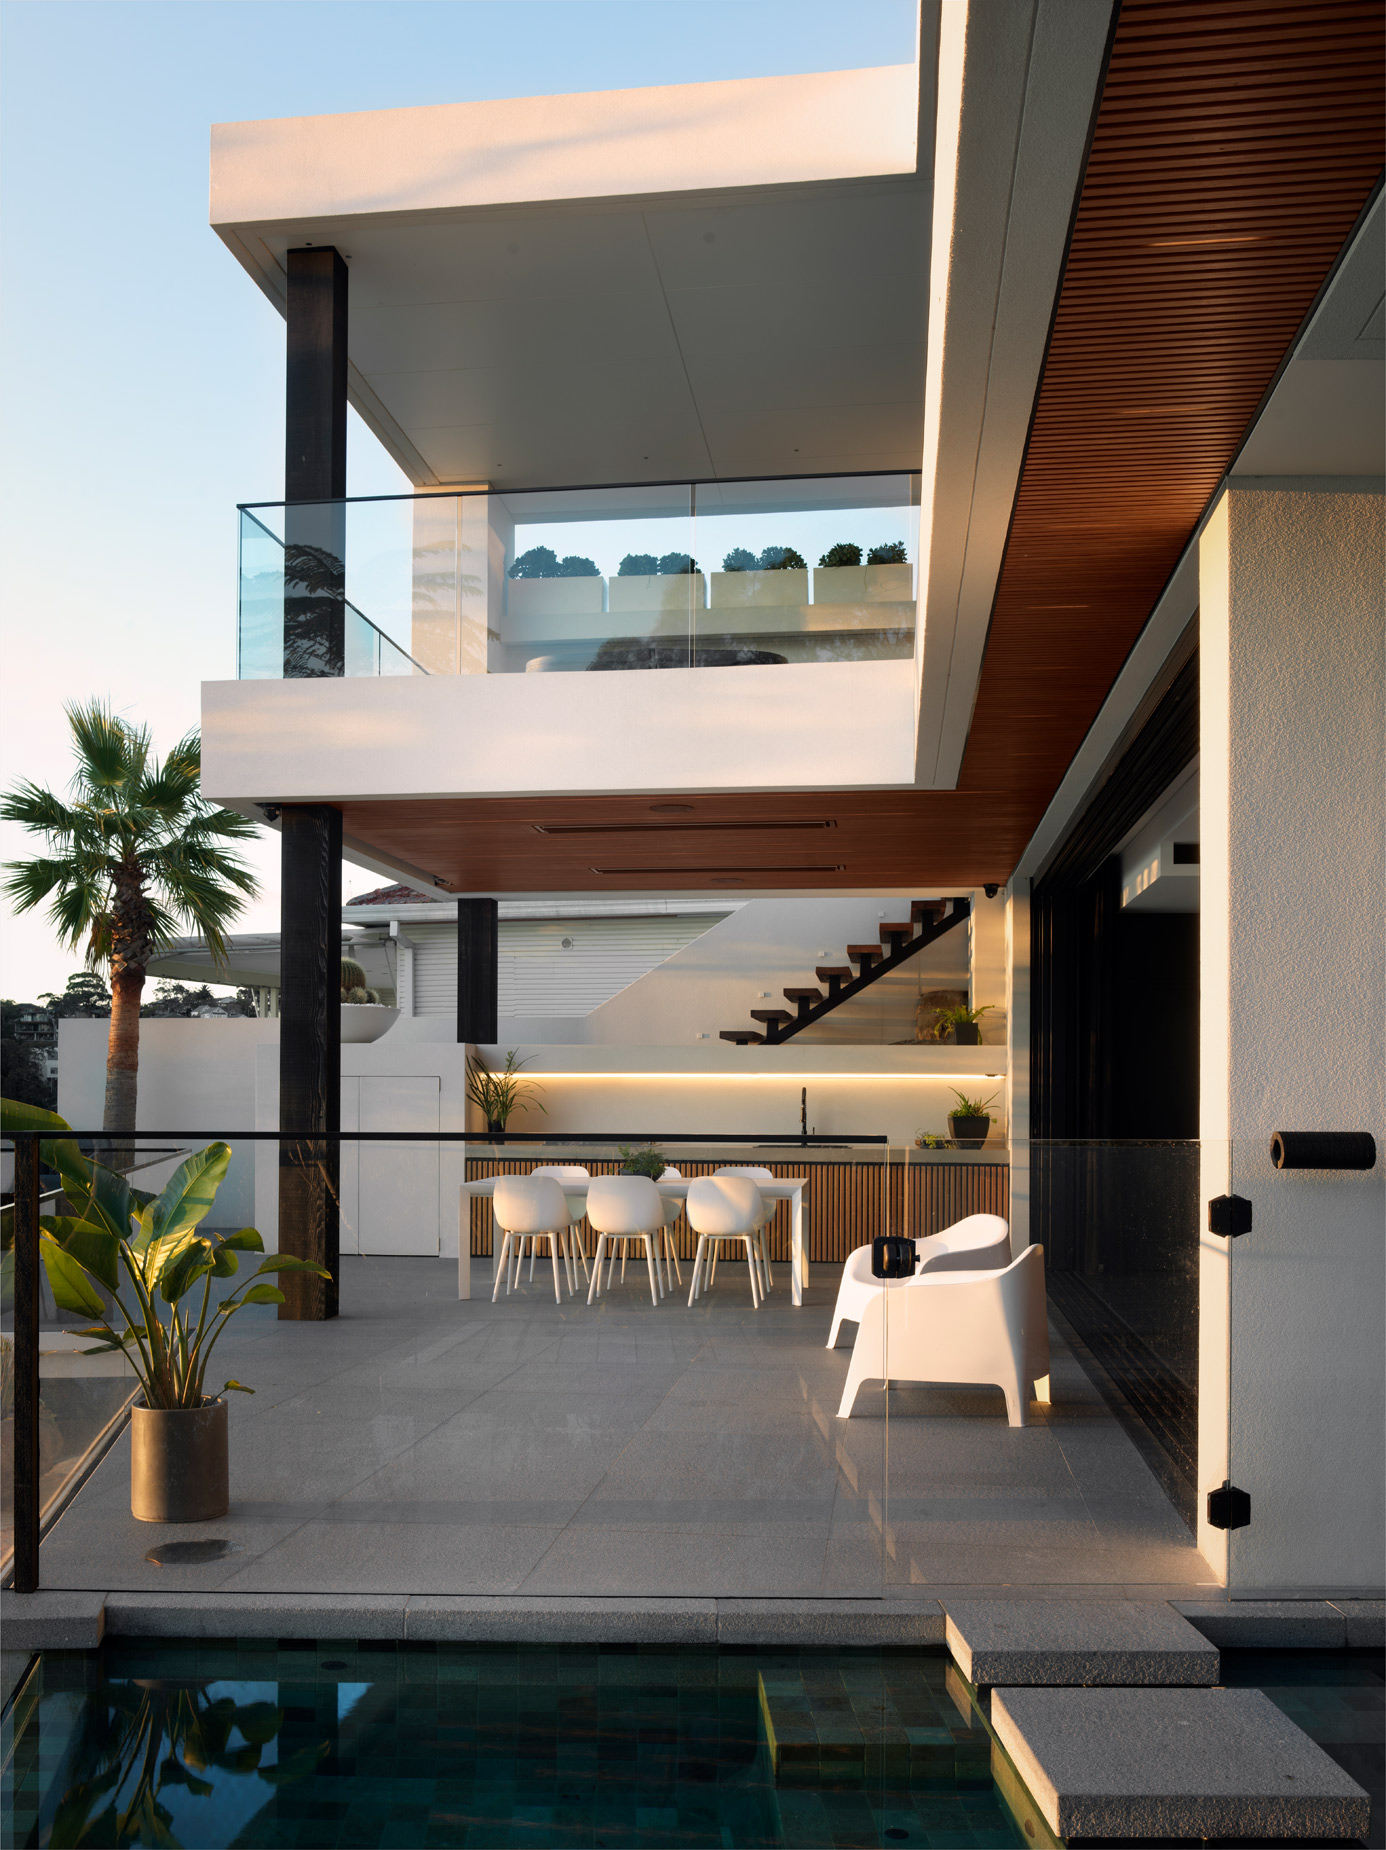 luke-butterly-2020-Oyster-Bay-House-by-Couvaras-Architecture-Sydney-NSW-20b